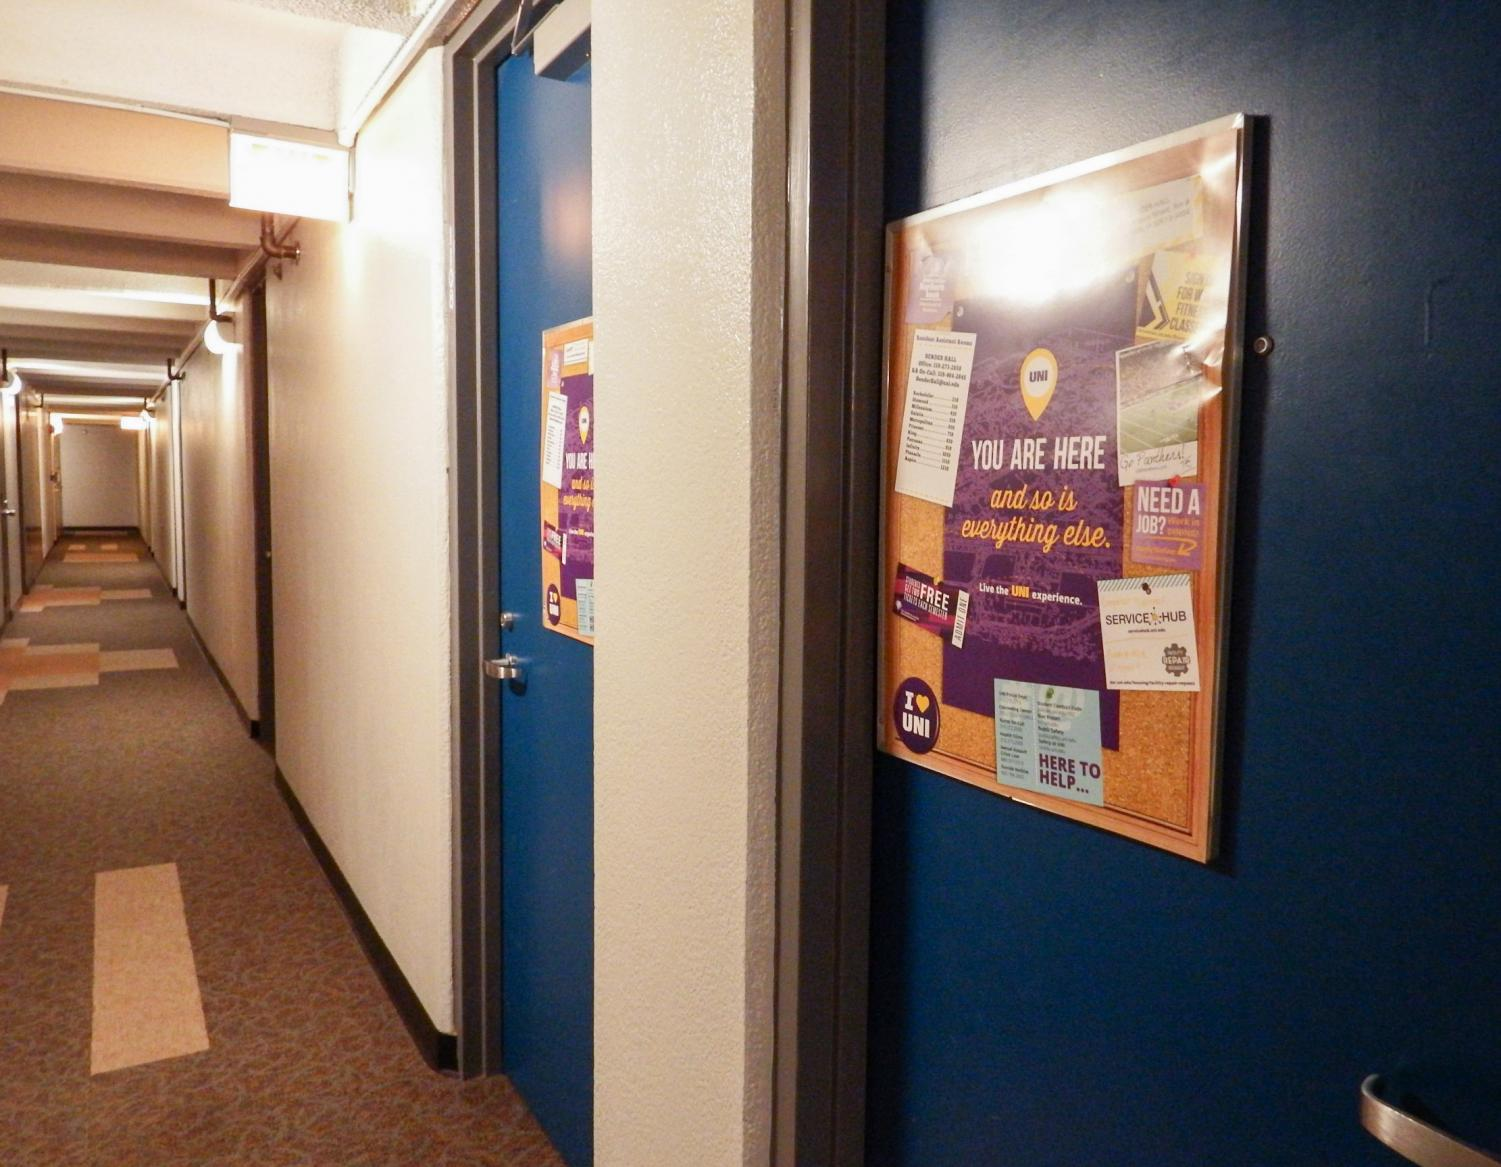 Next school year, the Department of Residence will implement changes to the residence halls.